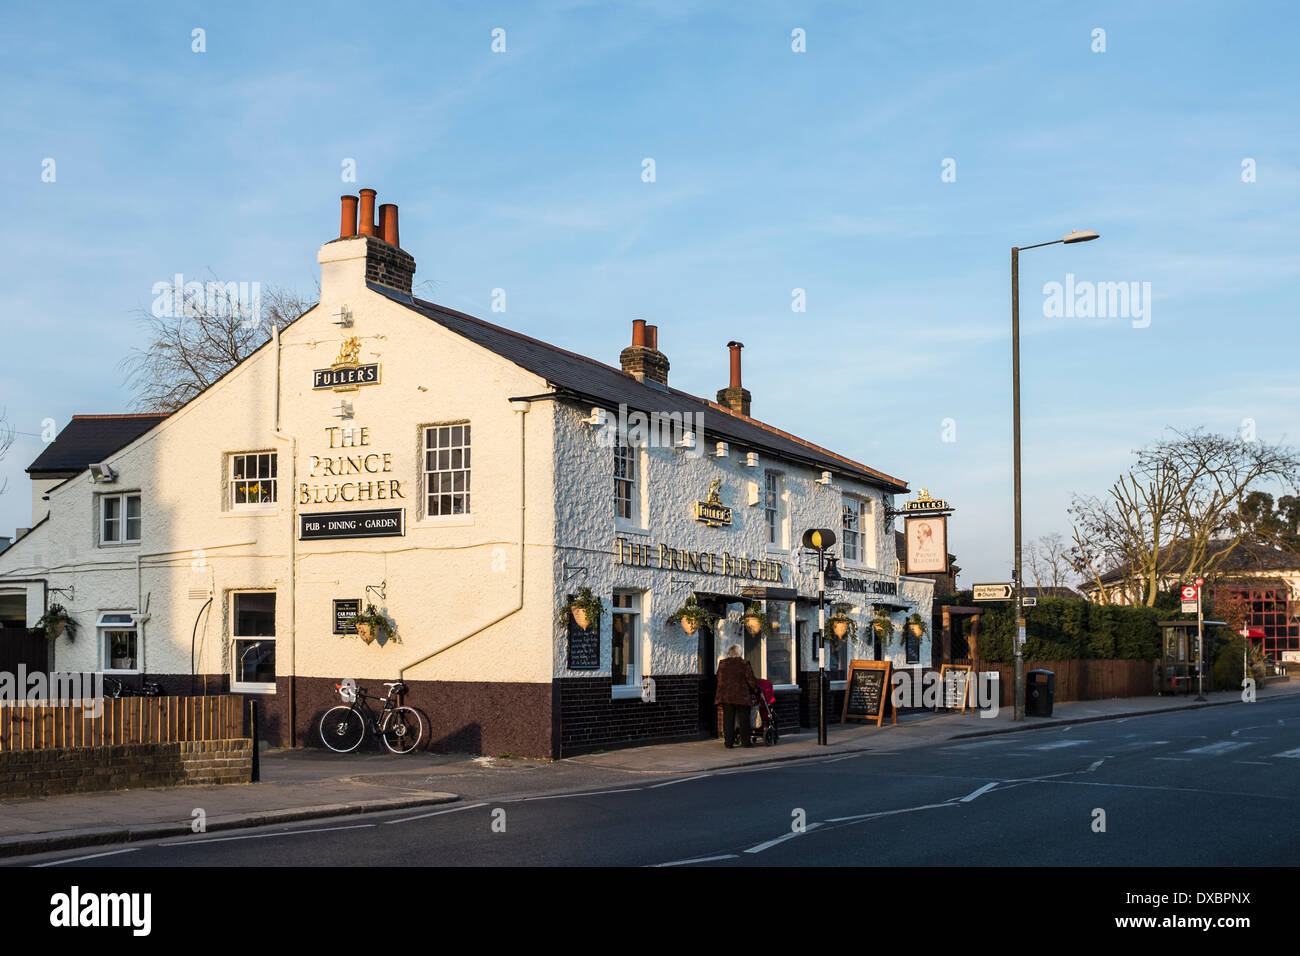 The Prince Blucher - Traditional English Fullers pub and restaurant in Twickenham, London, UK - Stock Image